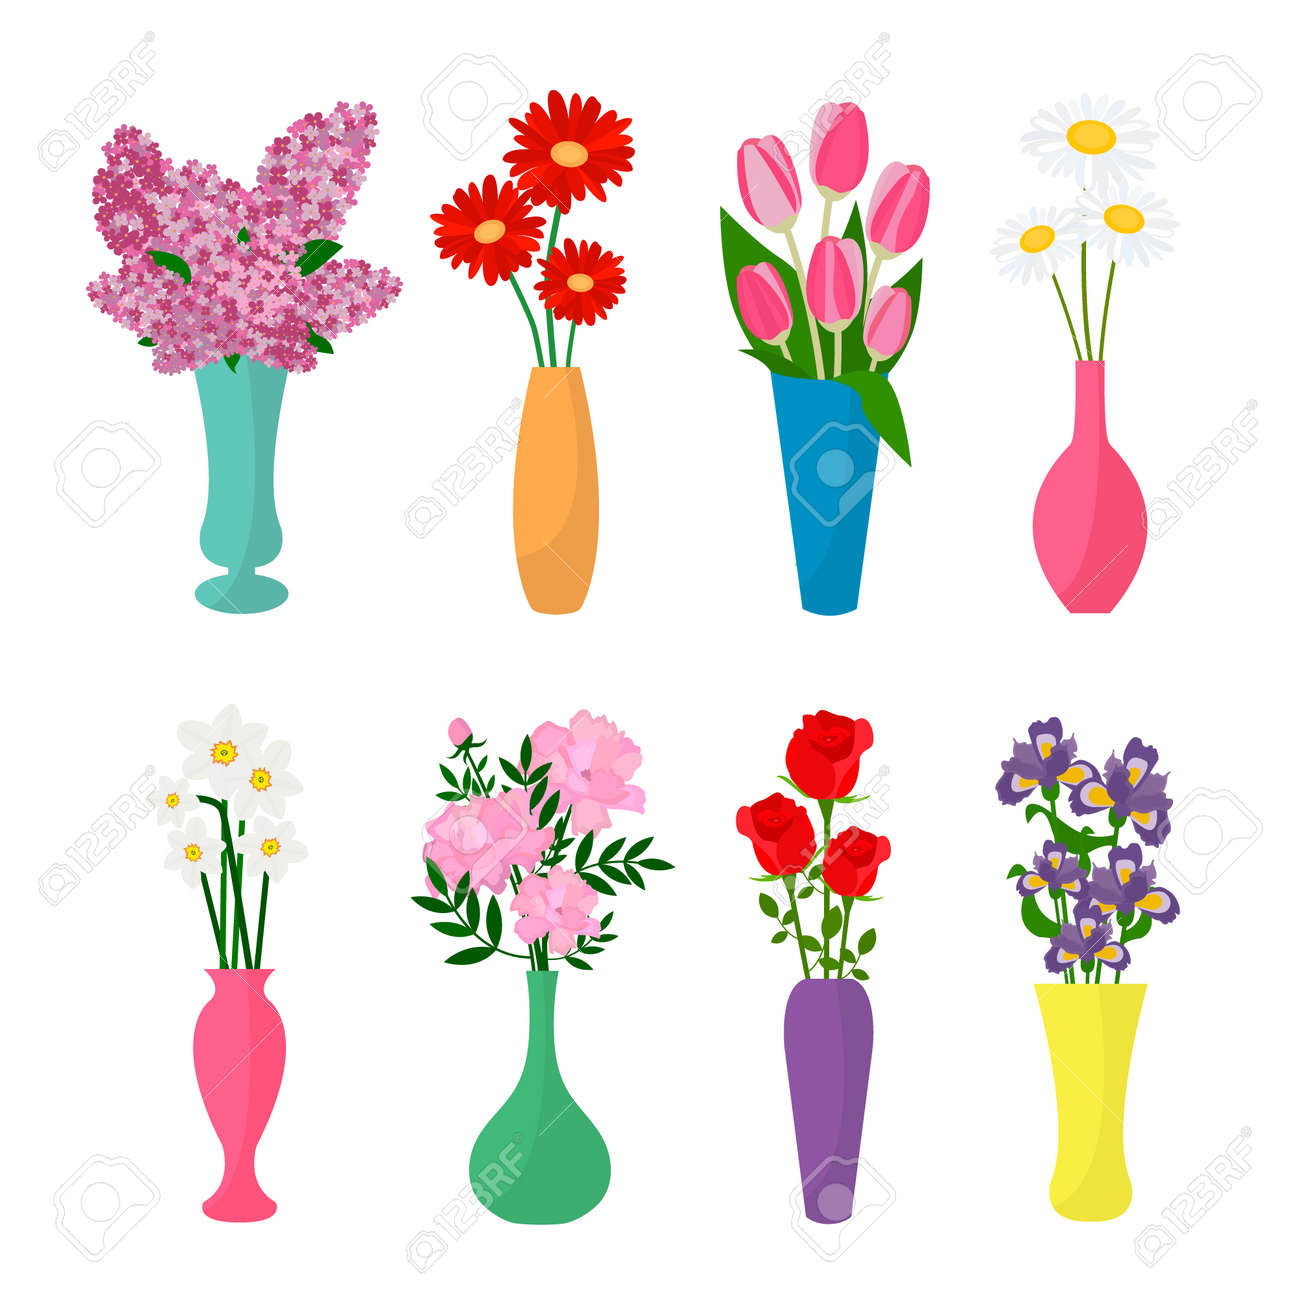 Flowers in vases flower pots icons chamomile rose lilac flowers in vases flower pots icons chamomile rose lilac tulip reviewsmspy